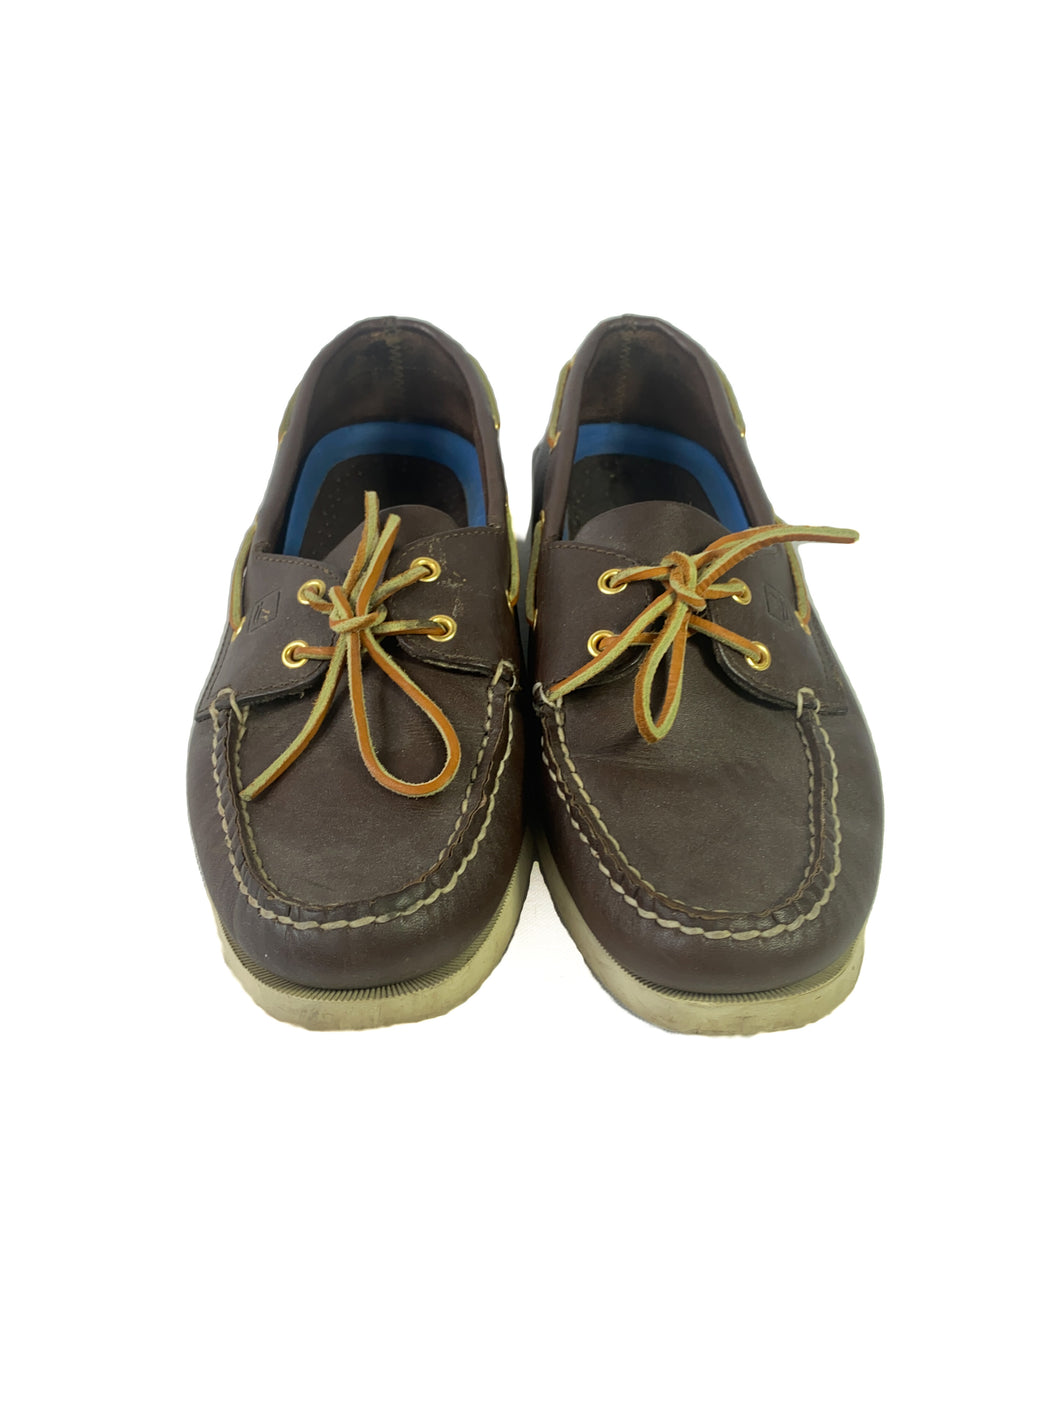 Sperry brown leather boat shoes size 11